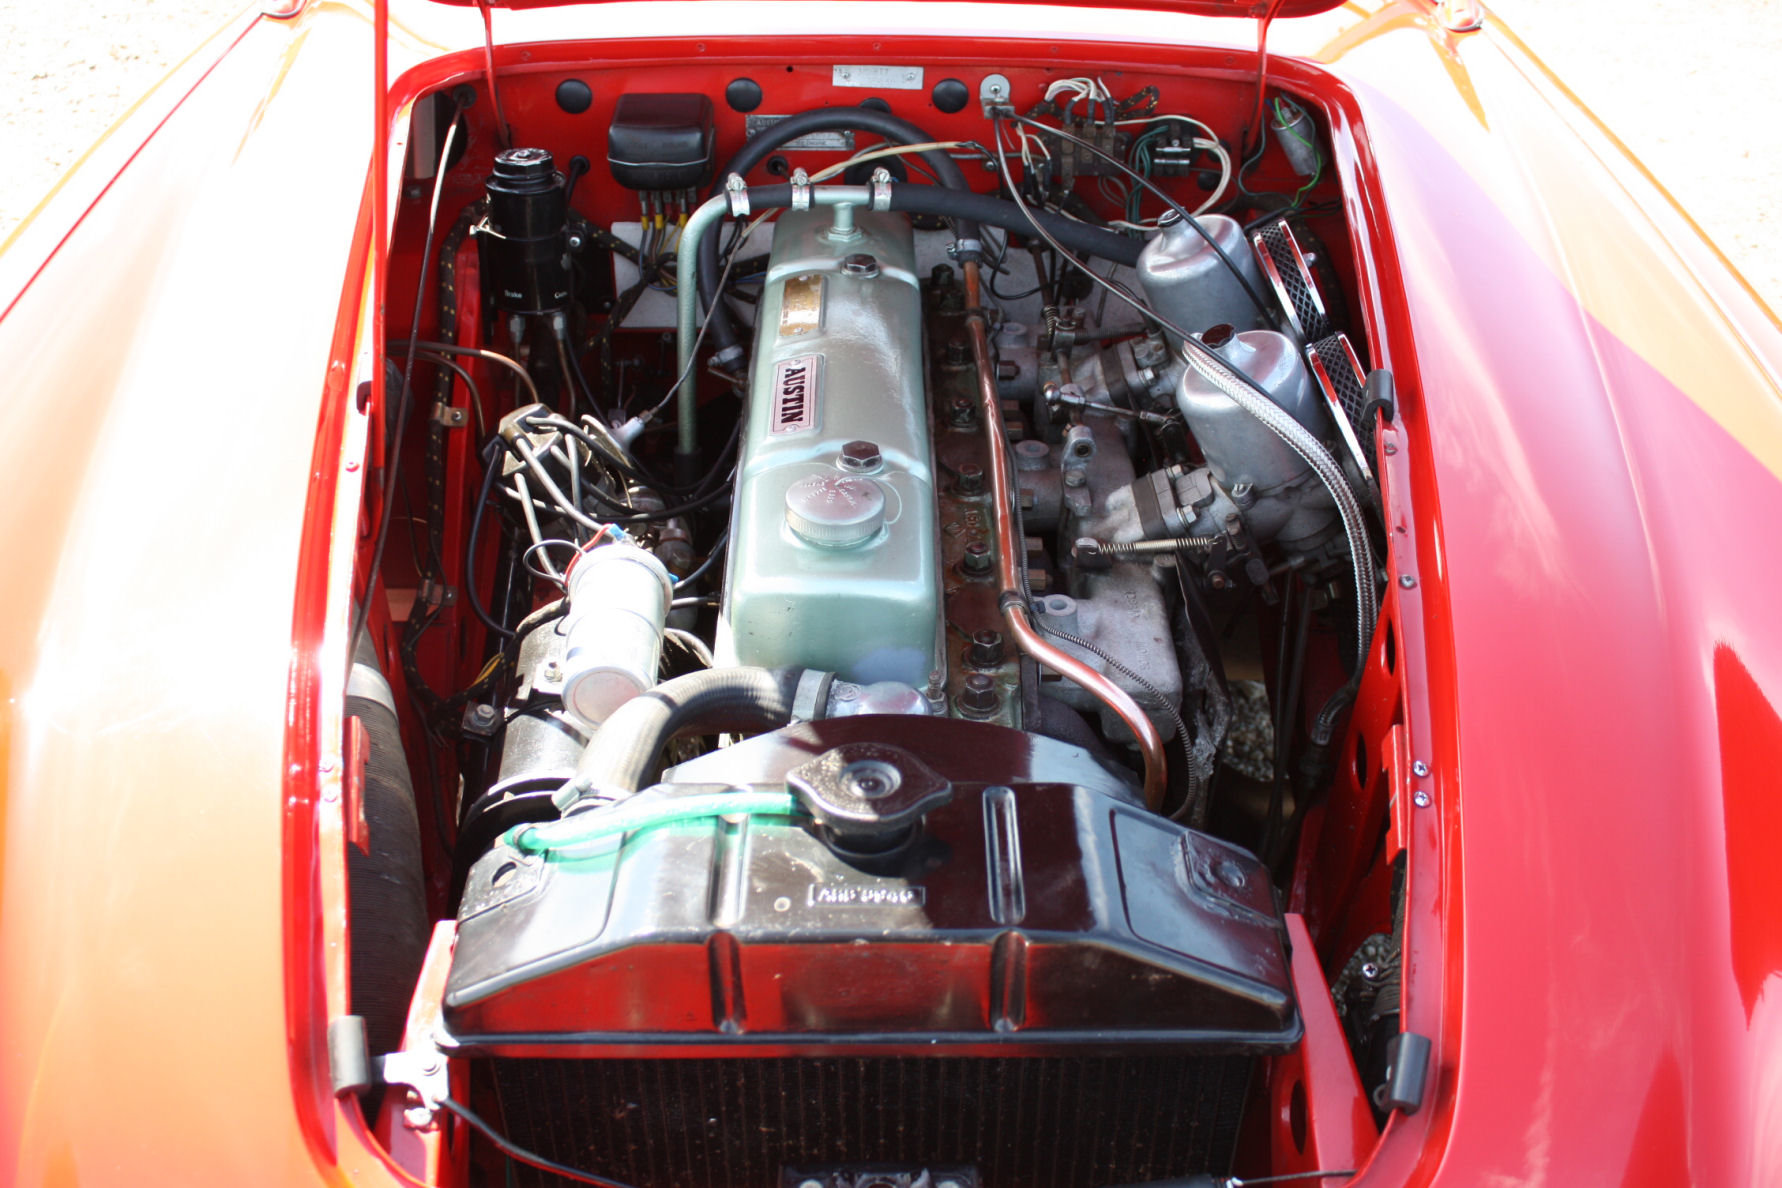 1962 AUSTIN HEALEY 3000 MKII FOUR SEATER. EXTENSIVELY RESTORED For Sale (picture 3 of 6)